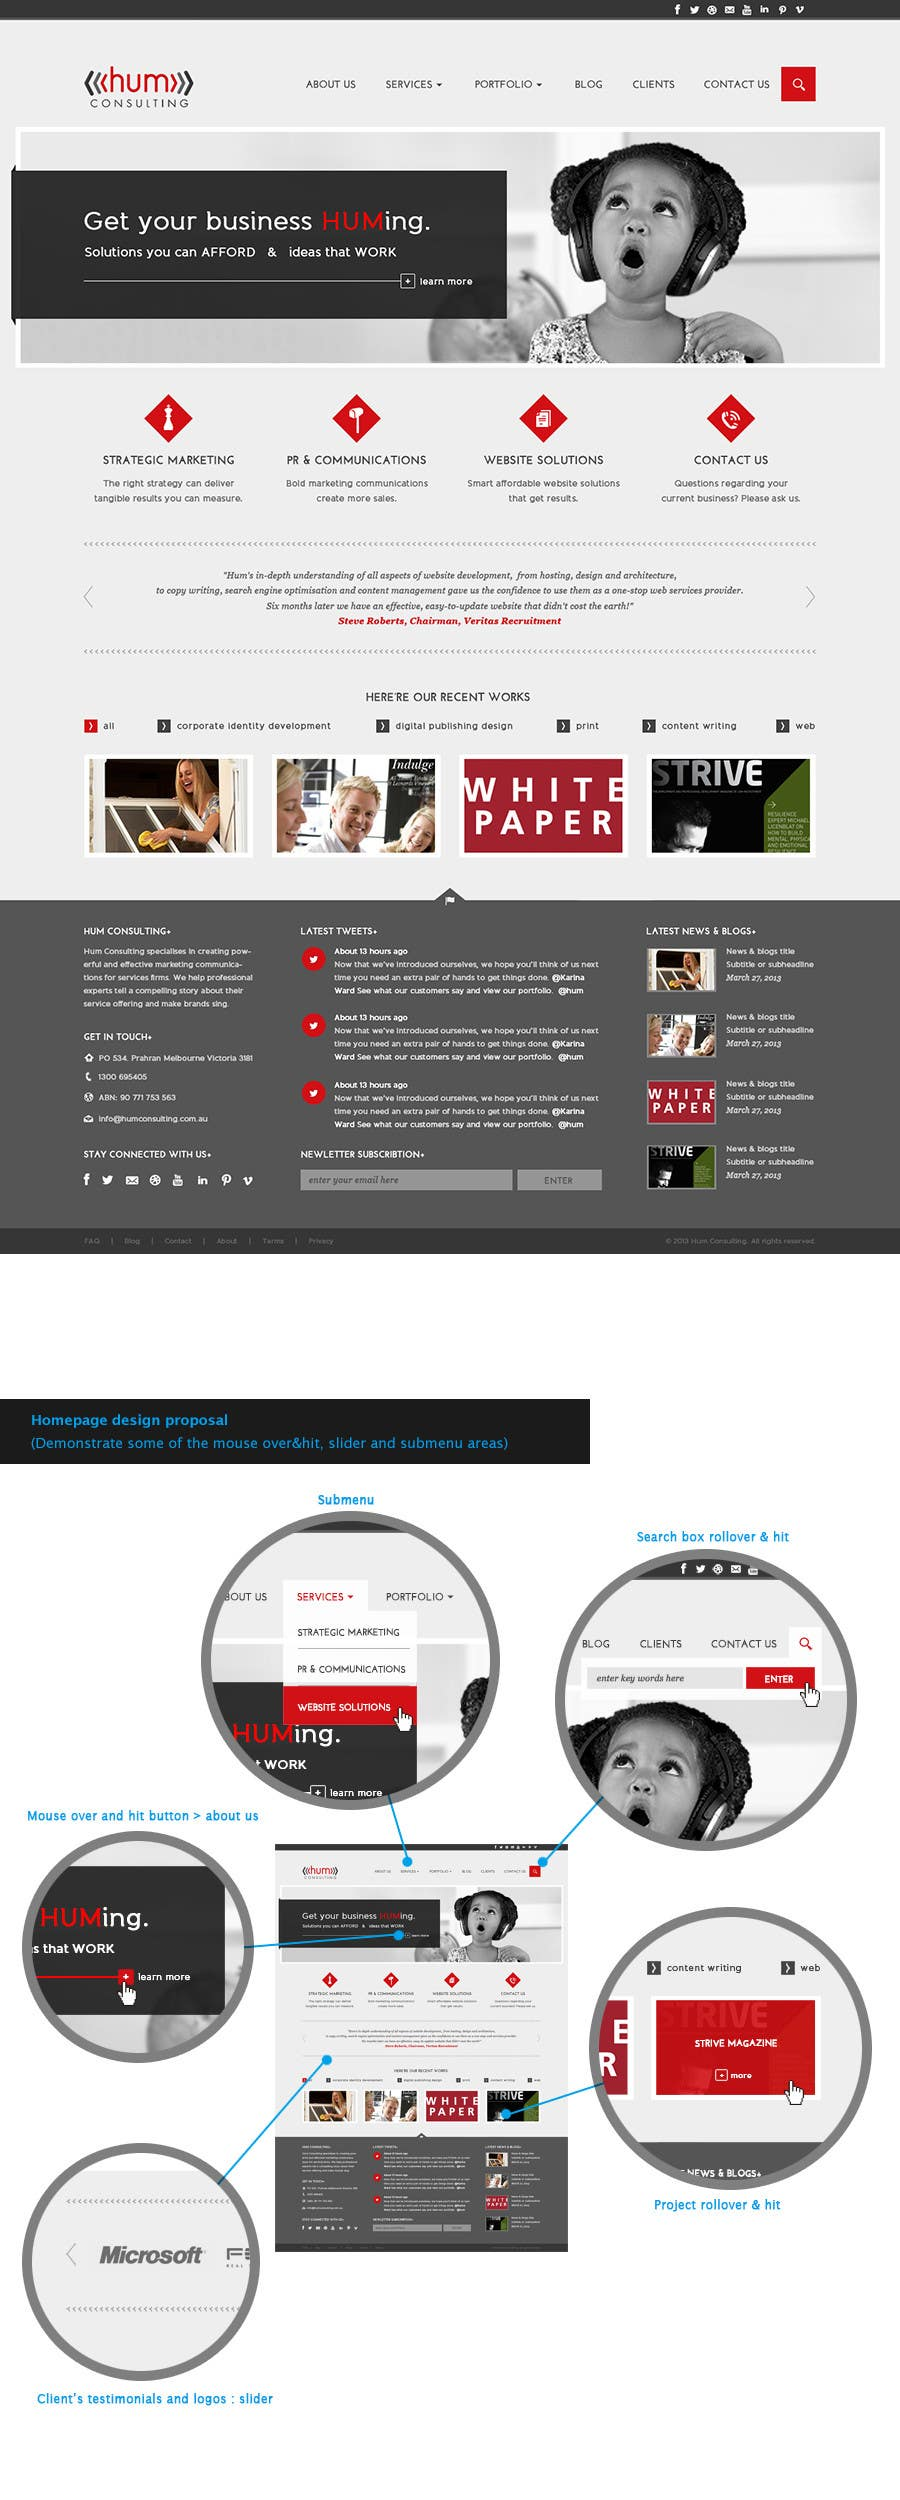 Penyertaan Peraduan #                                        34                                      untuk                                         Website Redesign for Digital Marketing Company